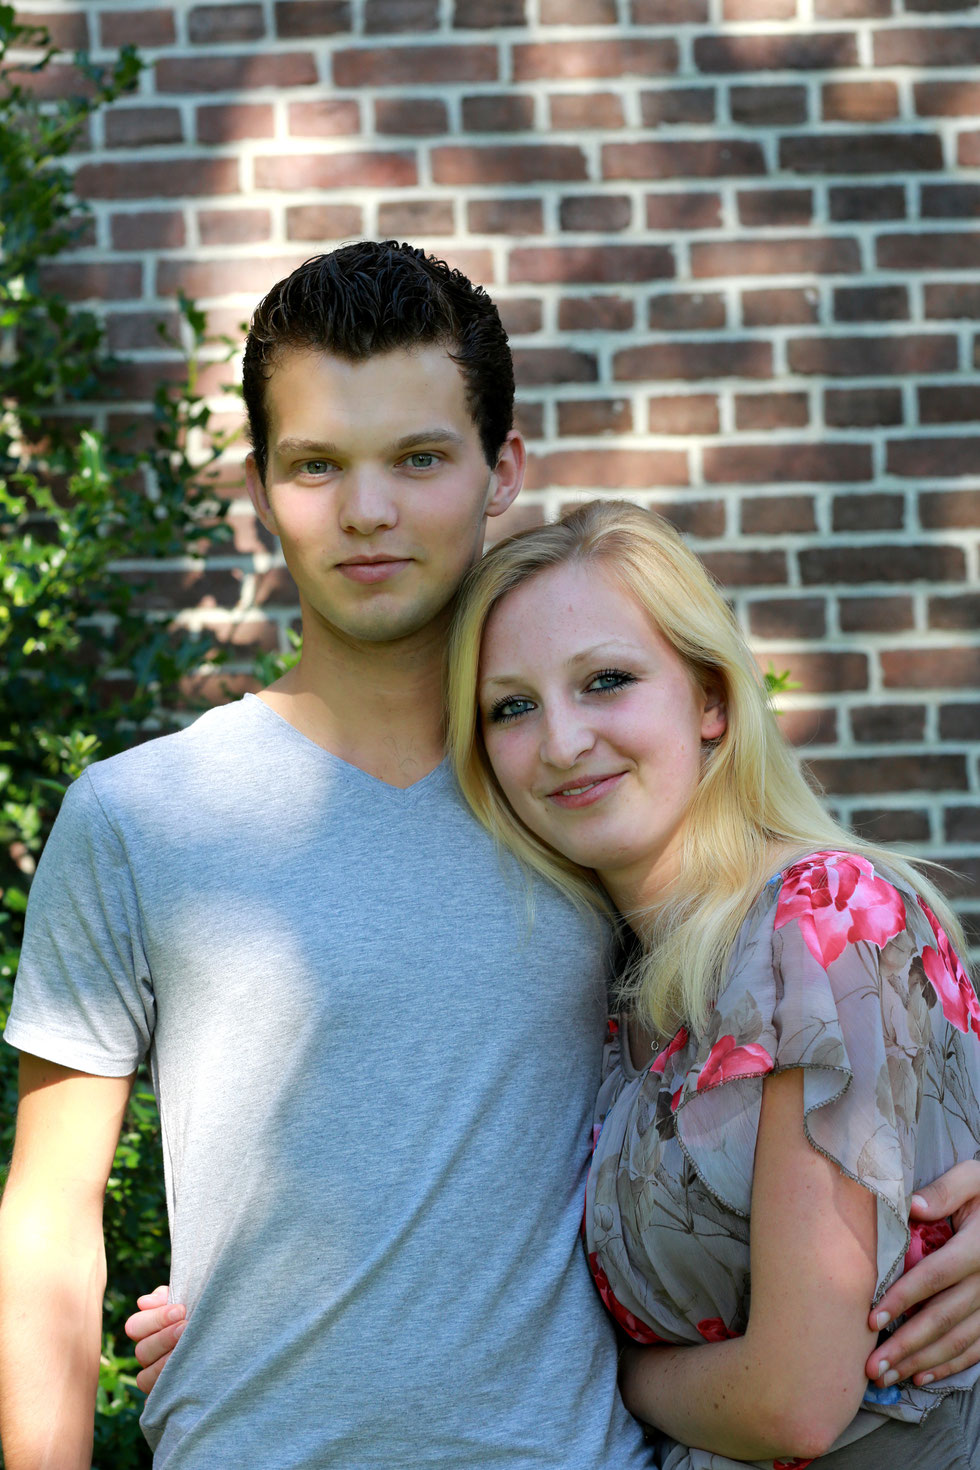 21 years old, Jort and Eline 2012